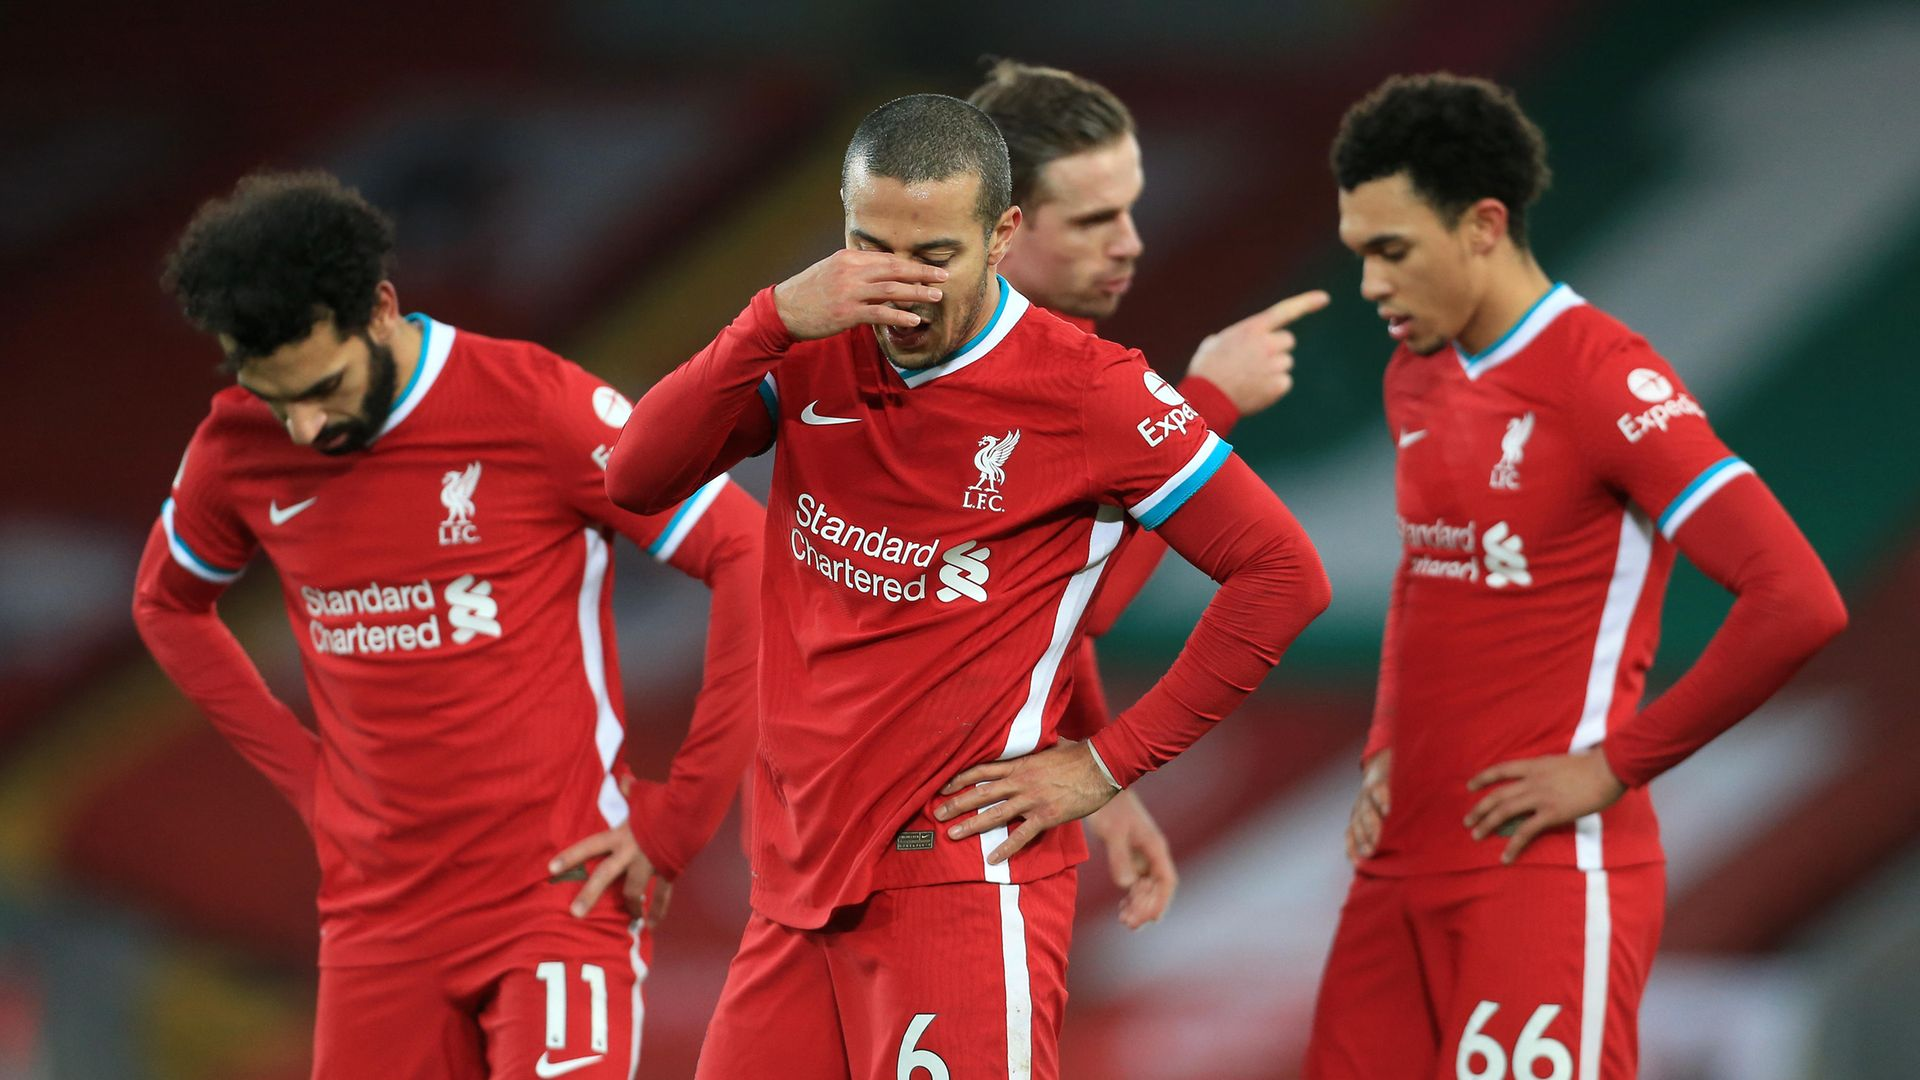 Thiago Alcantara of Liverpool looks dejected during their 4--1 Premier League home defeat by Manchester City at Anfield on February 7, 2021 - Credit: Photo by Simon Stacpoole/Offside/Offside via Getty Images